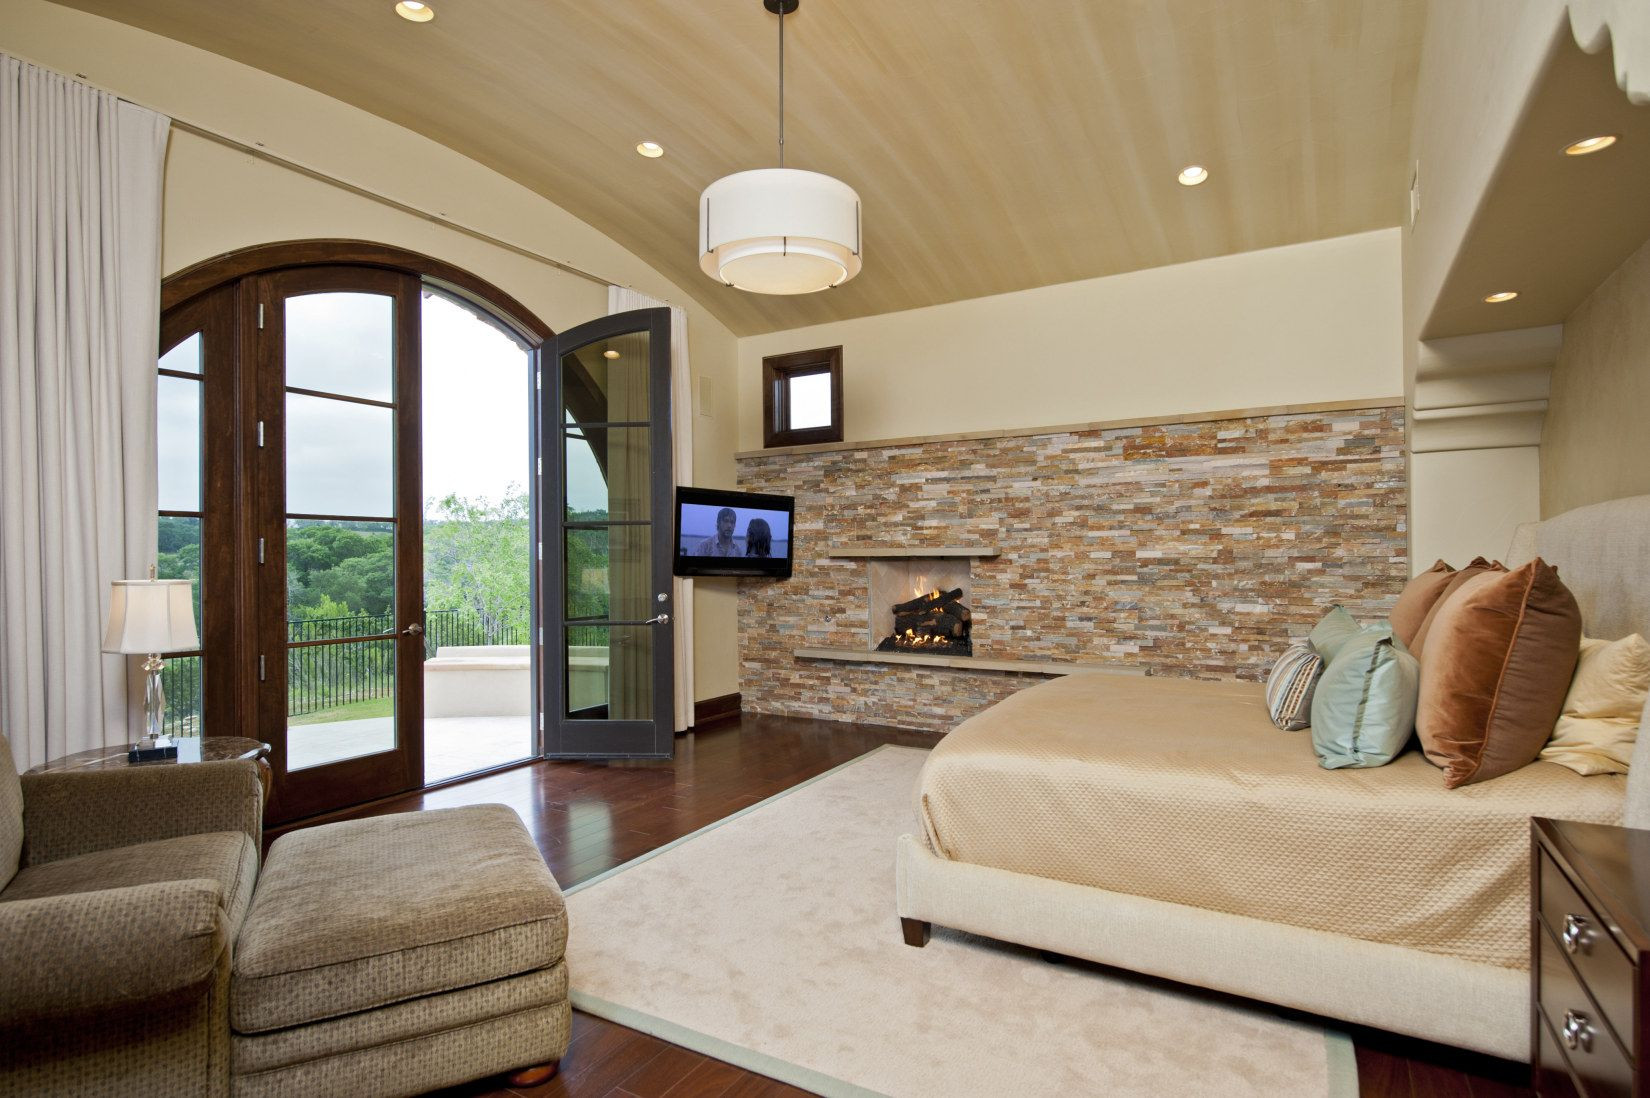 master bedroom hardwood floor pictures of contemporary tuscan vernacular master bedroom rooms pinterest with brick wall contemporary master bedroom with emerald latrice brown chair and ottoman set flush light hardwood floors french doors